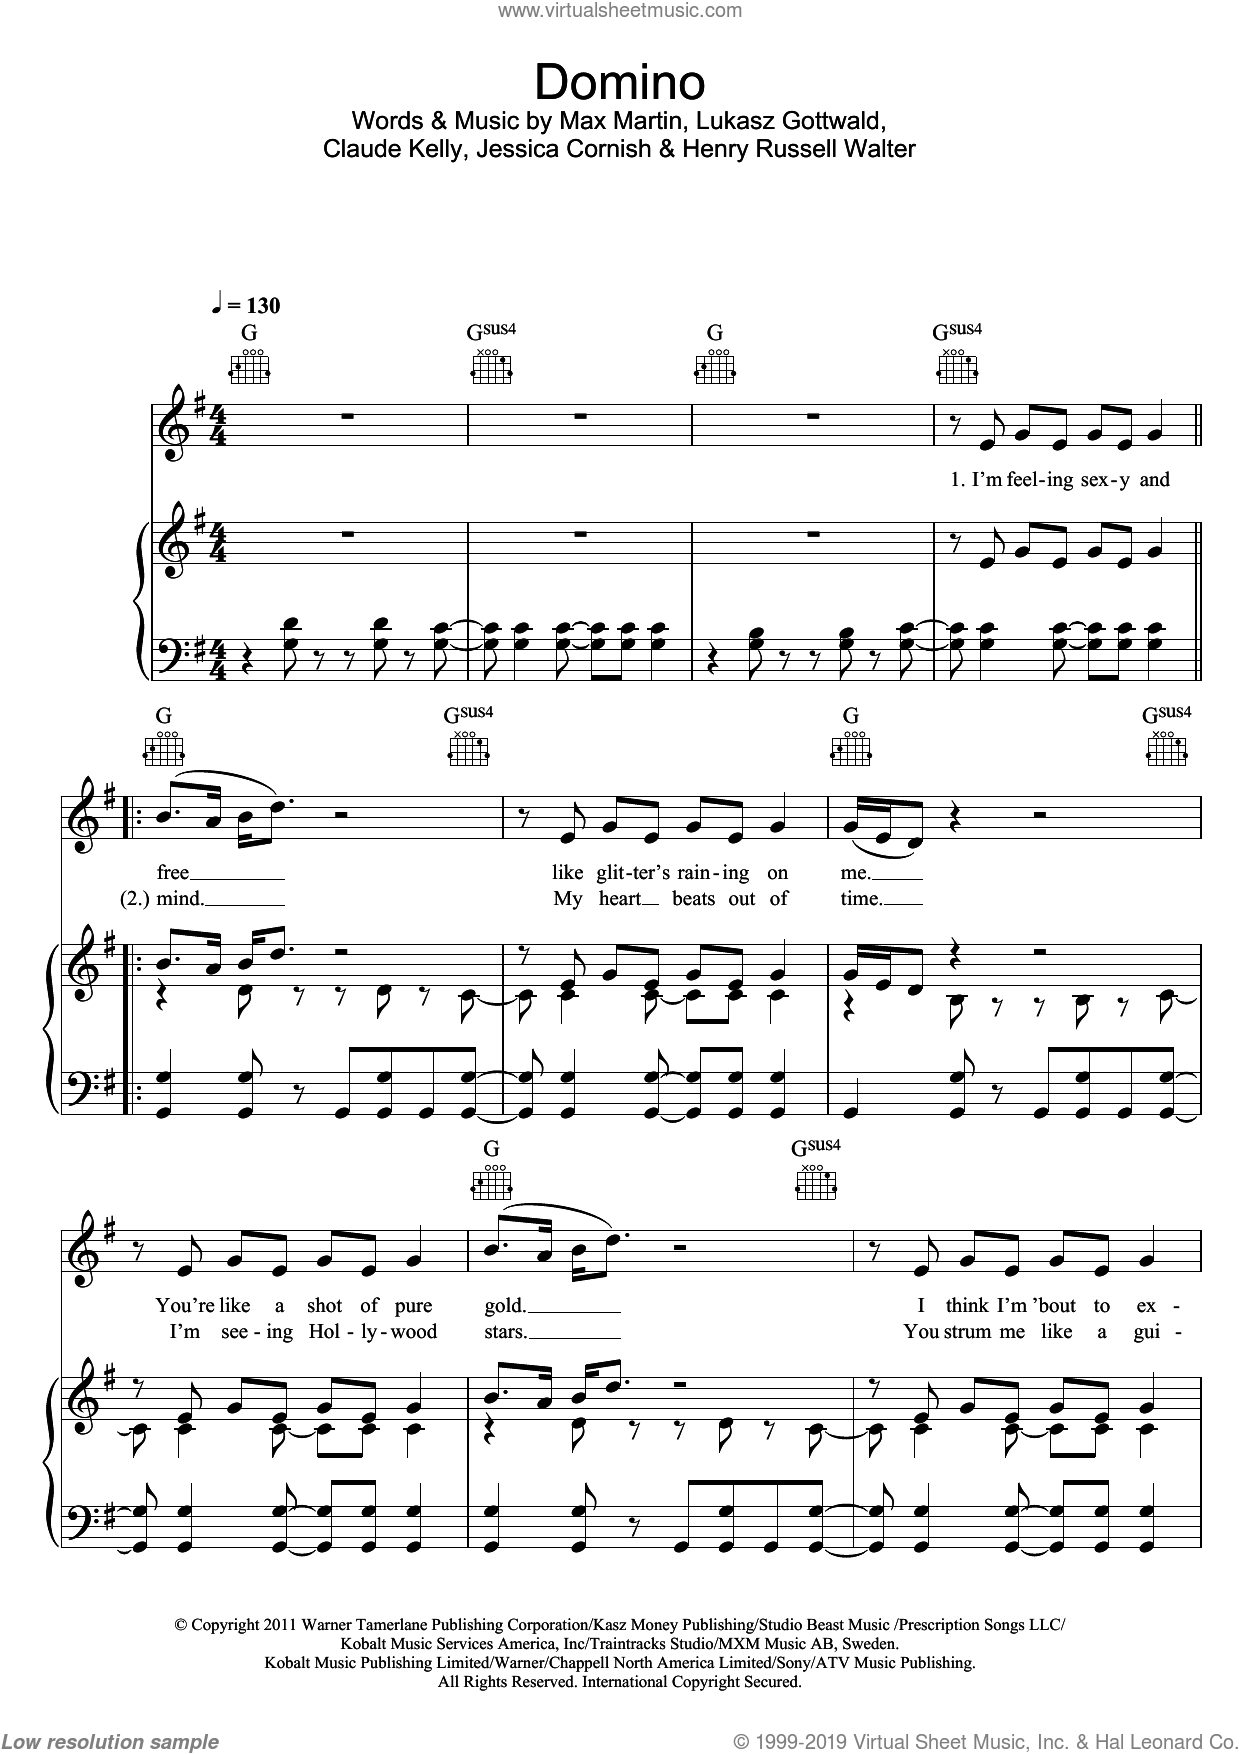 Domino sheet music for voice, piano or guitar by Max Martin